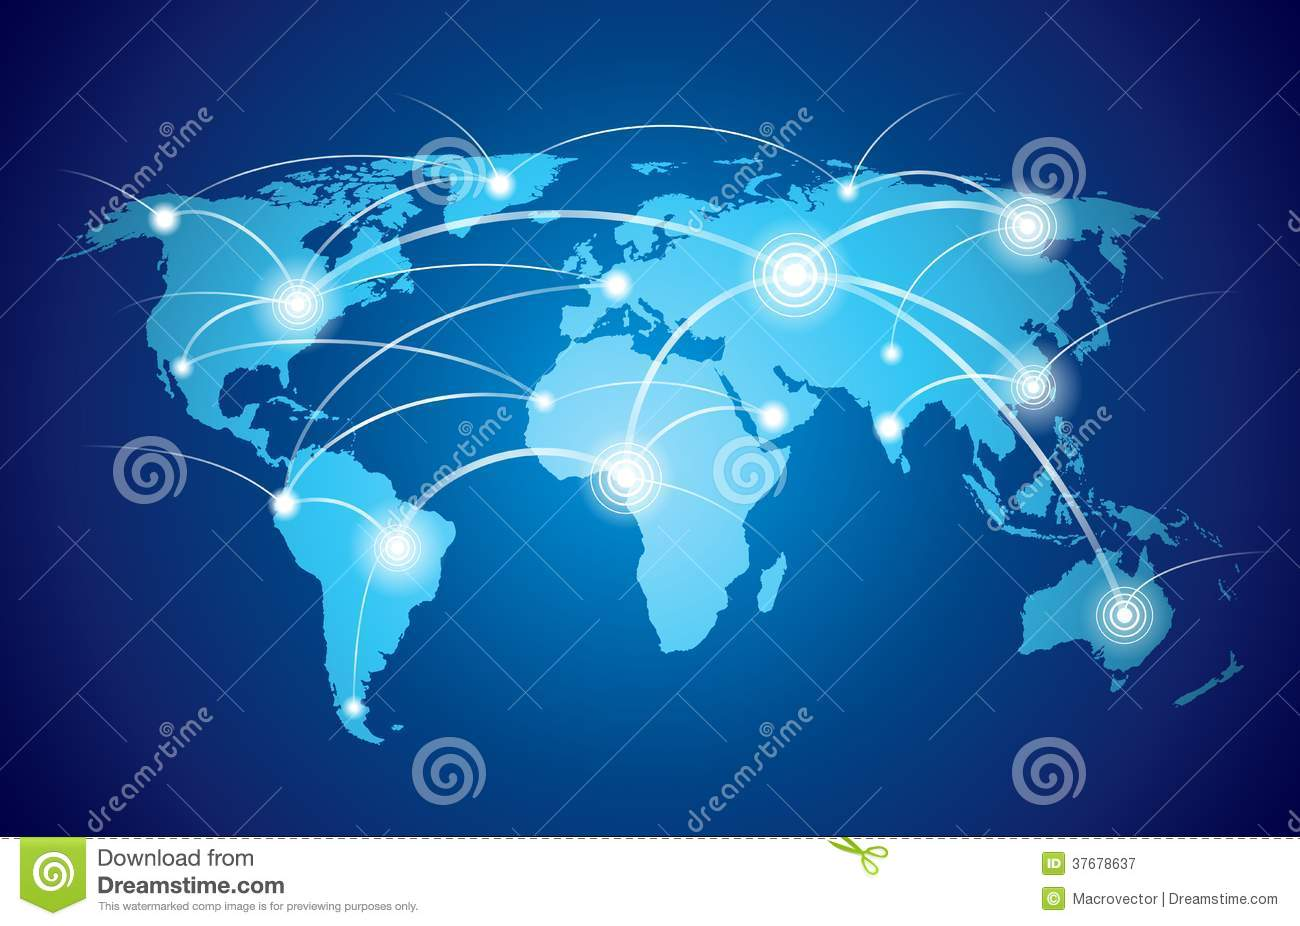 World map with global network stock vector illustration for Global design company